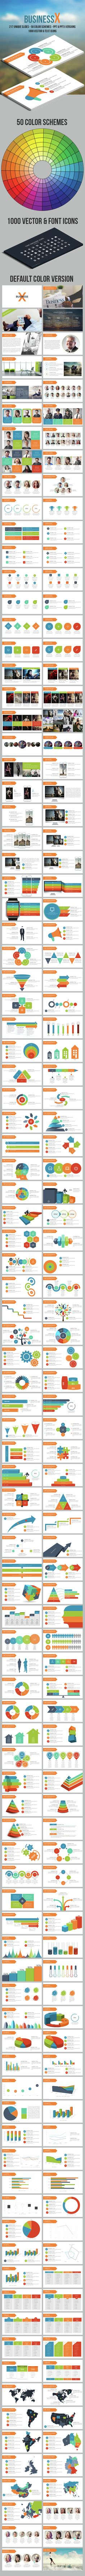 Business X Powerpoint Template. Download here: http://graphicriver.net/item/business-x-powerpoint-template/14995794?ref=ksioks